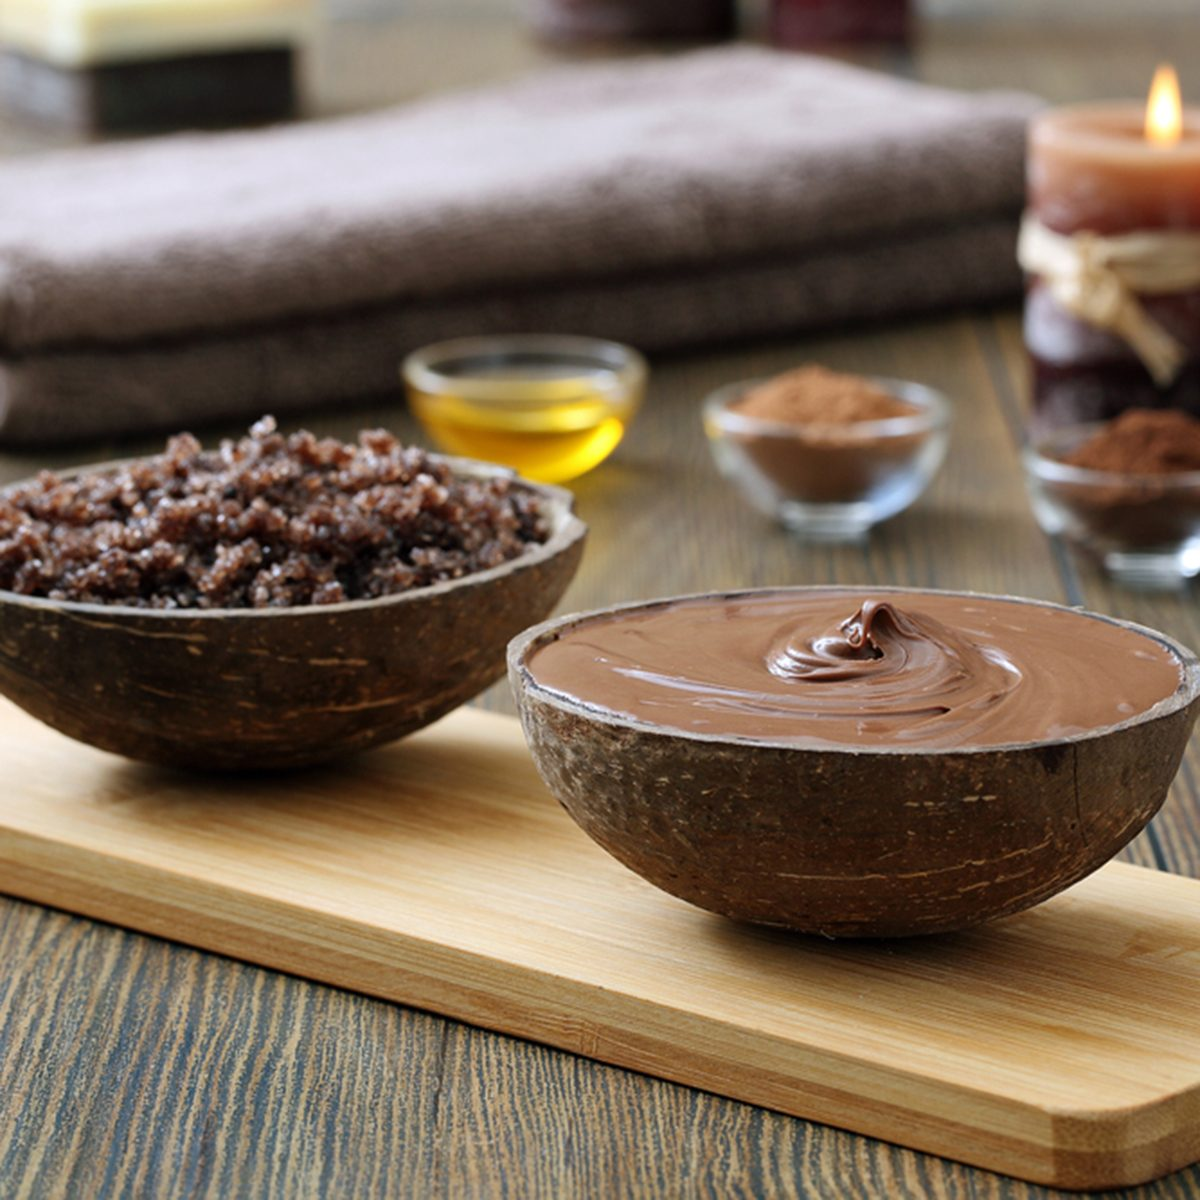 chocolate spa- and aroma therapy on wood background